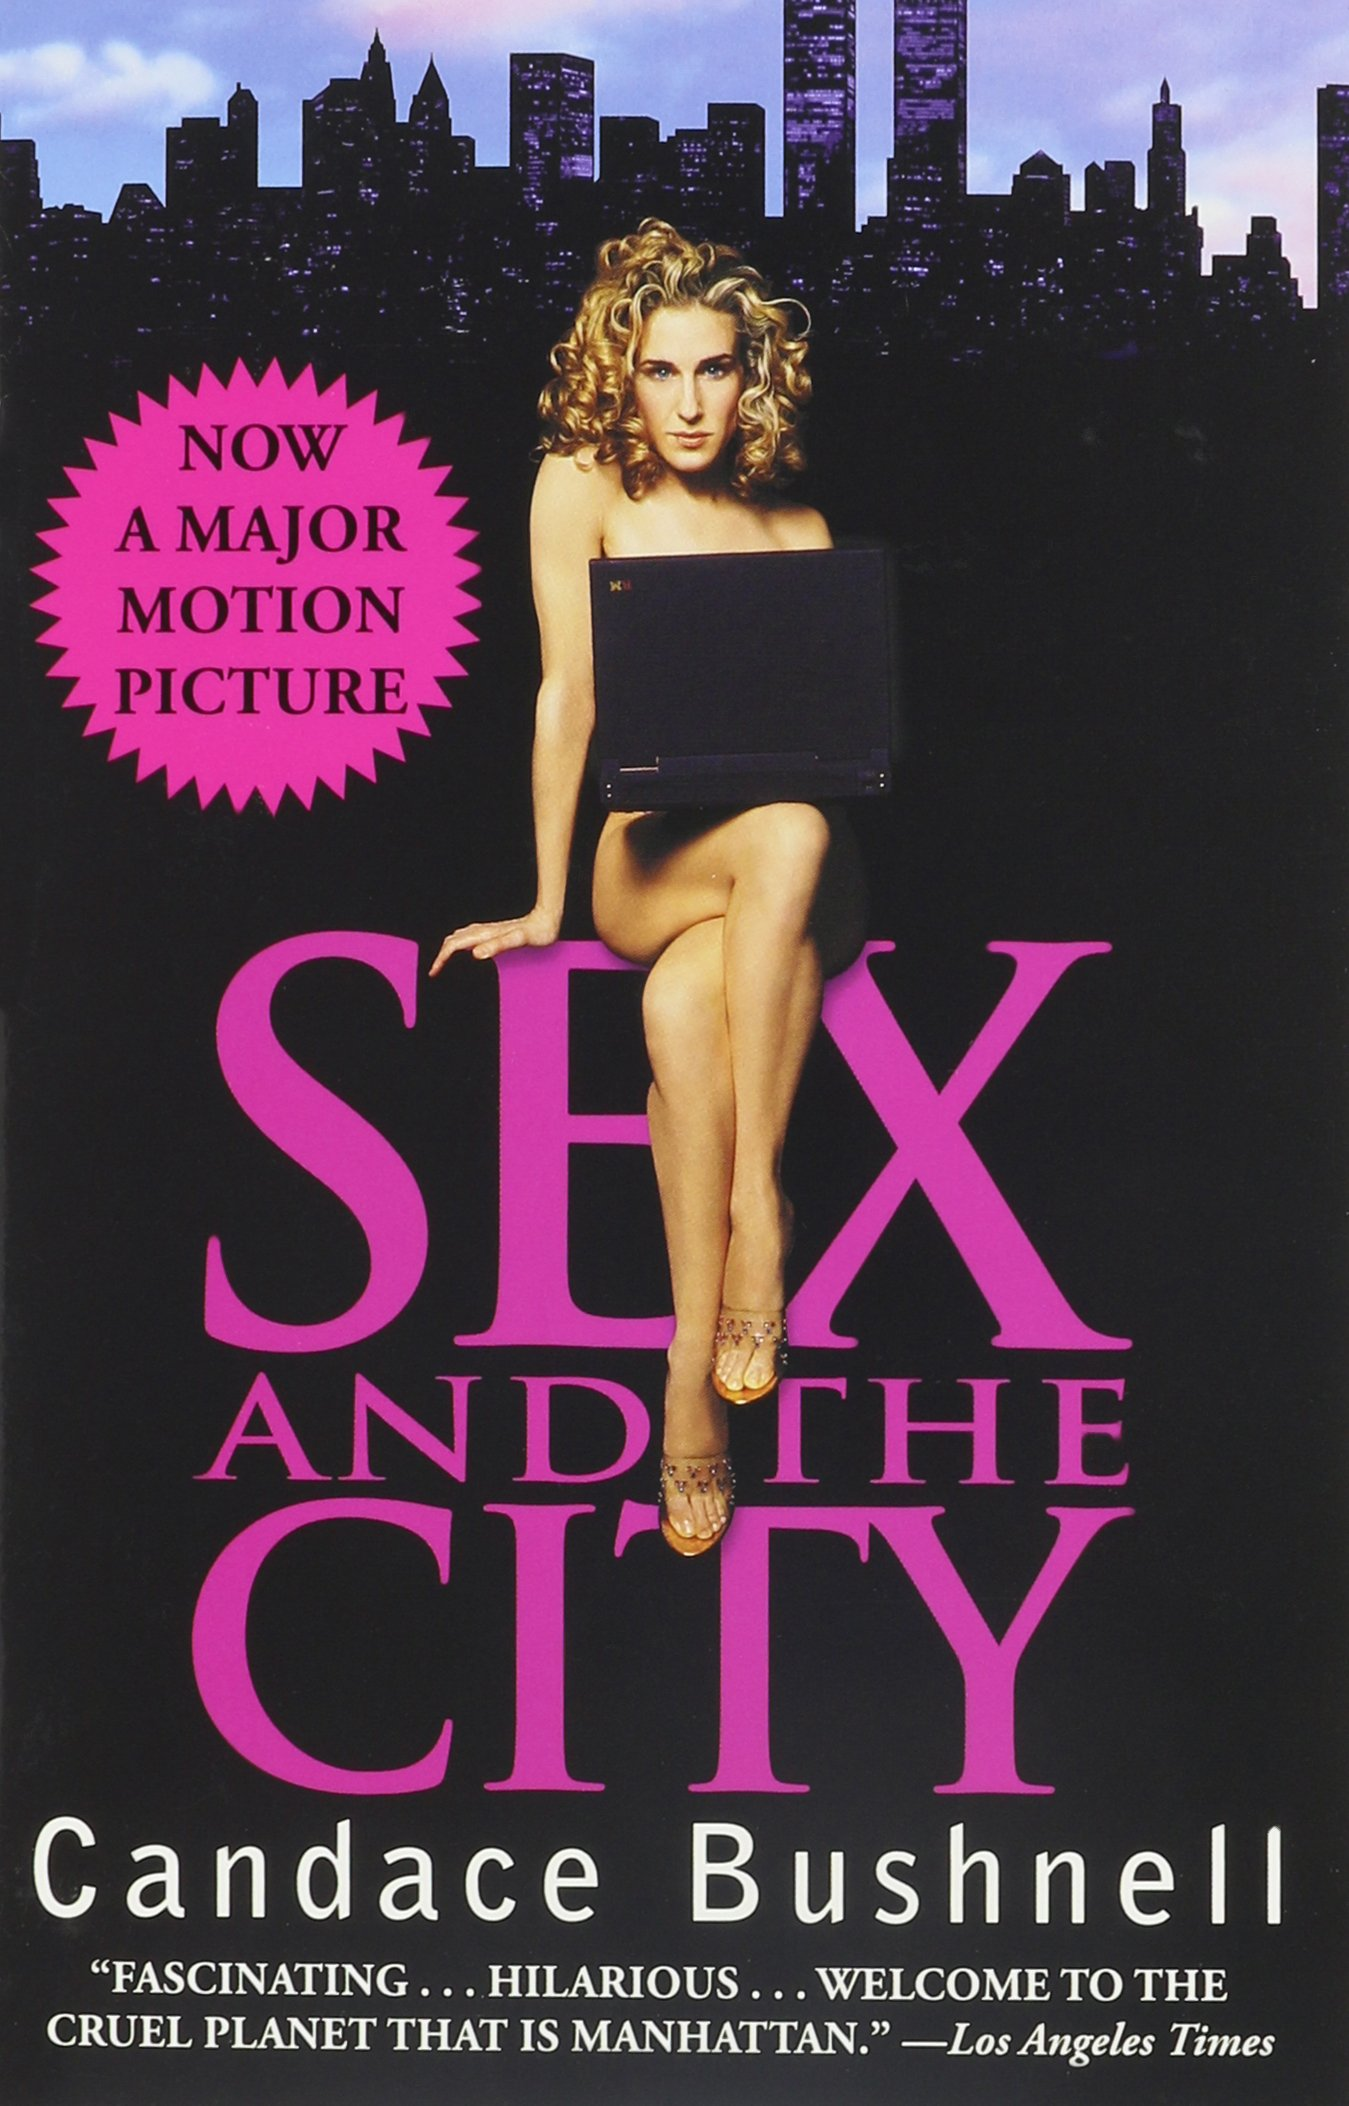 Sex and the city novel author